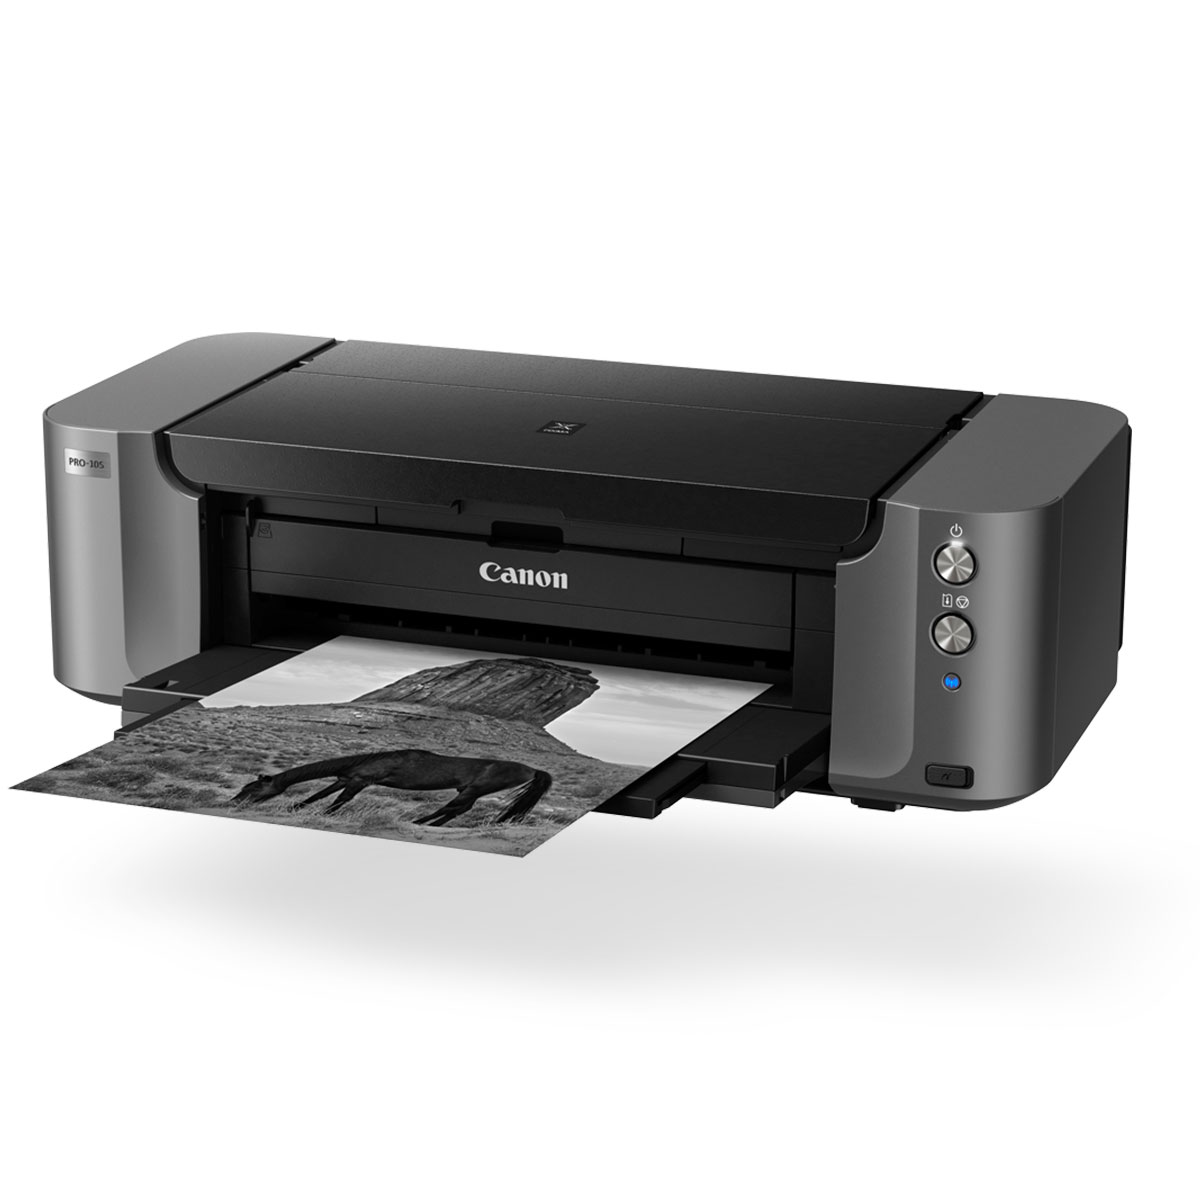 PIXMA PRO-10S black front angled with paper